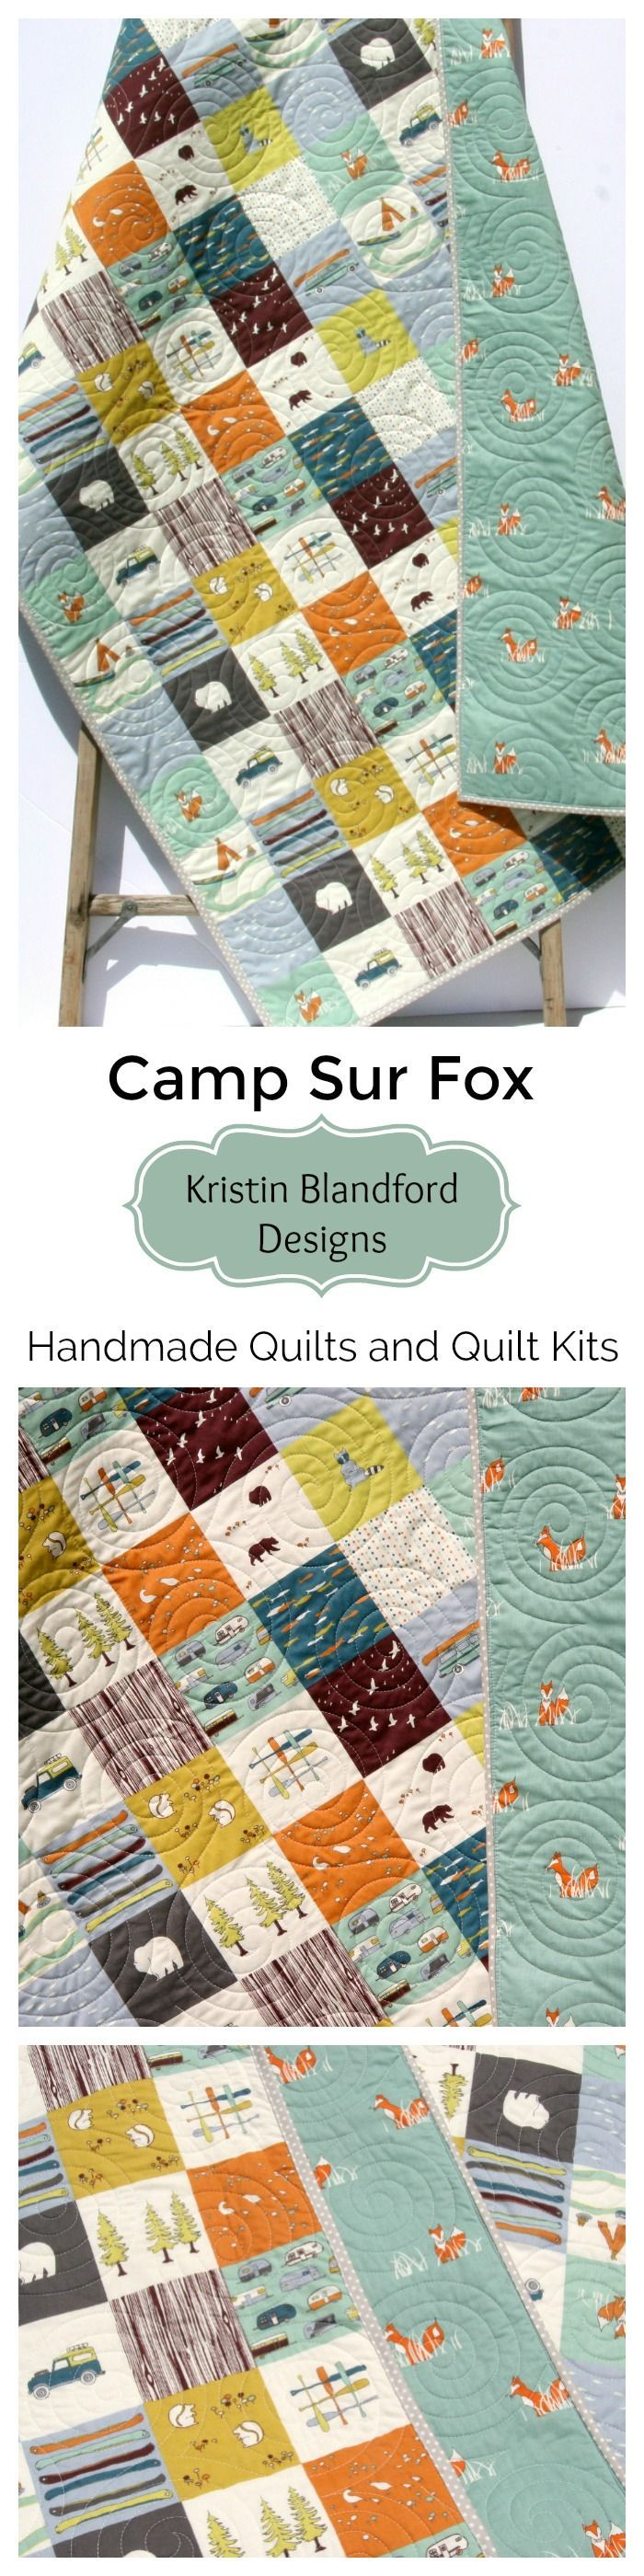 Camp Sur Big Sur Handmade Baby Quilt, Toddler Bed Quilt, Faux Patchwork, Beginner Quilt Kit, Cheater Panel Quick Easy Fun Sewing Project, Woodland Forest Boy Nursery Bedding, Bears Fox Camping Outdoors, Baby Quilt for Sale, Unique Modern Quilt by Kristin Blandford Designs #camping #quilts #homedecor #baby #babygifts #babyshower #nursery